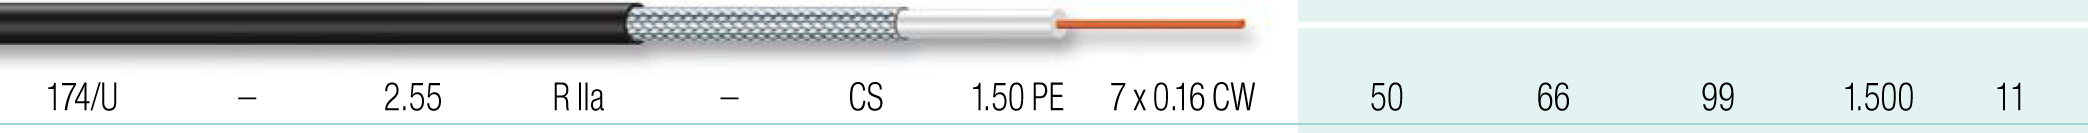 Cable coaxial 29